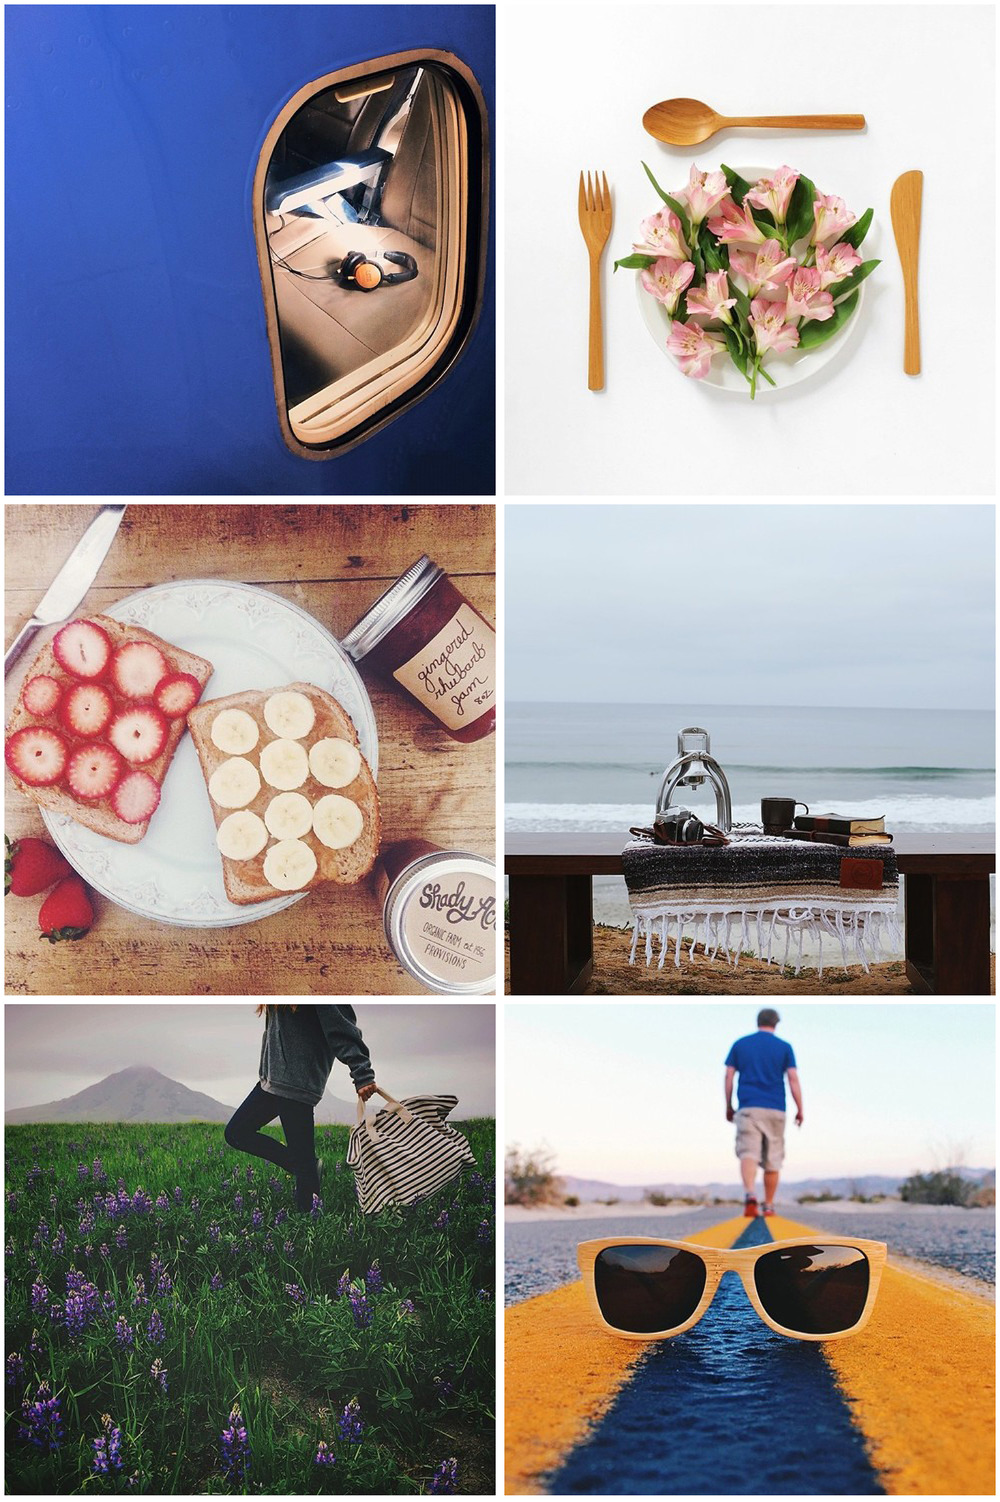 Images from an Earth Day campaign by Mobile Media Lab for Rodales. From top left, influential Instagrammers  @brandenharvey ,  @cacahuete_sr ,  @flashesofstyle ,  @gregorywoodman ,  @mrsgrubby  and  @sar_m  were all commissioned to post photos to their own feeds.